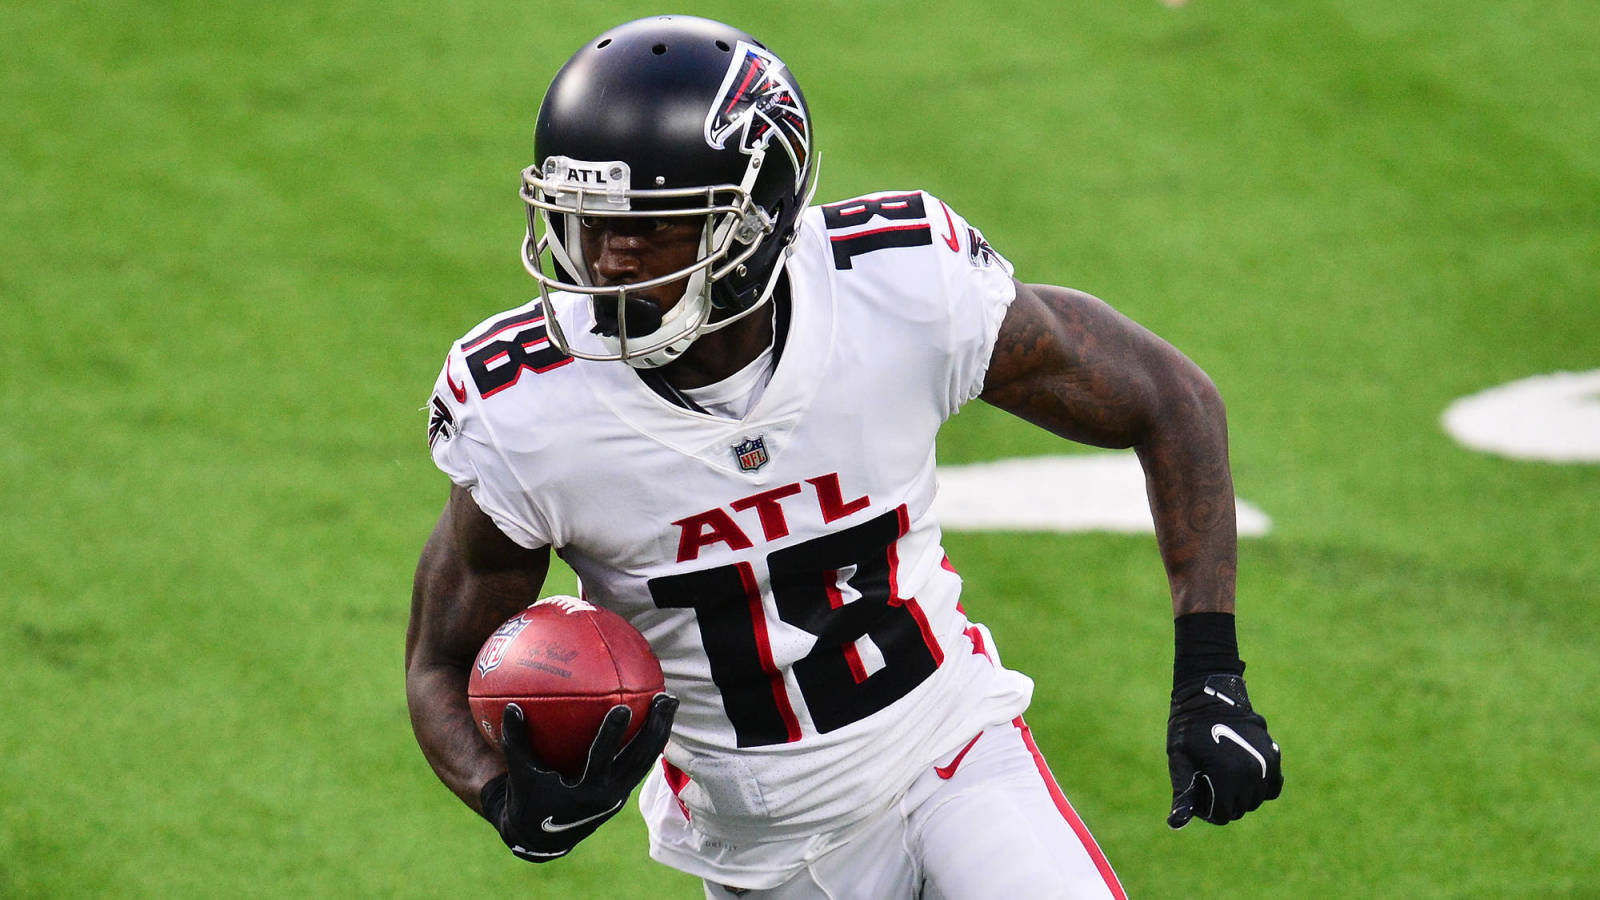 What the Falcons' decision on Calvin Ridley means for Julio Jones trade - Yardbarker